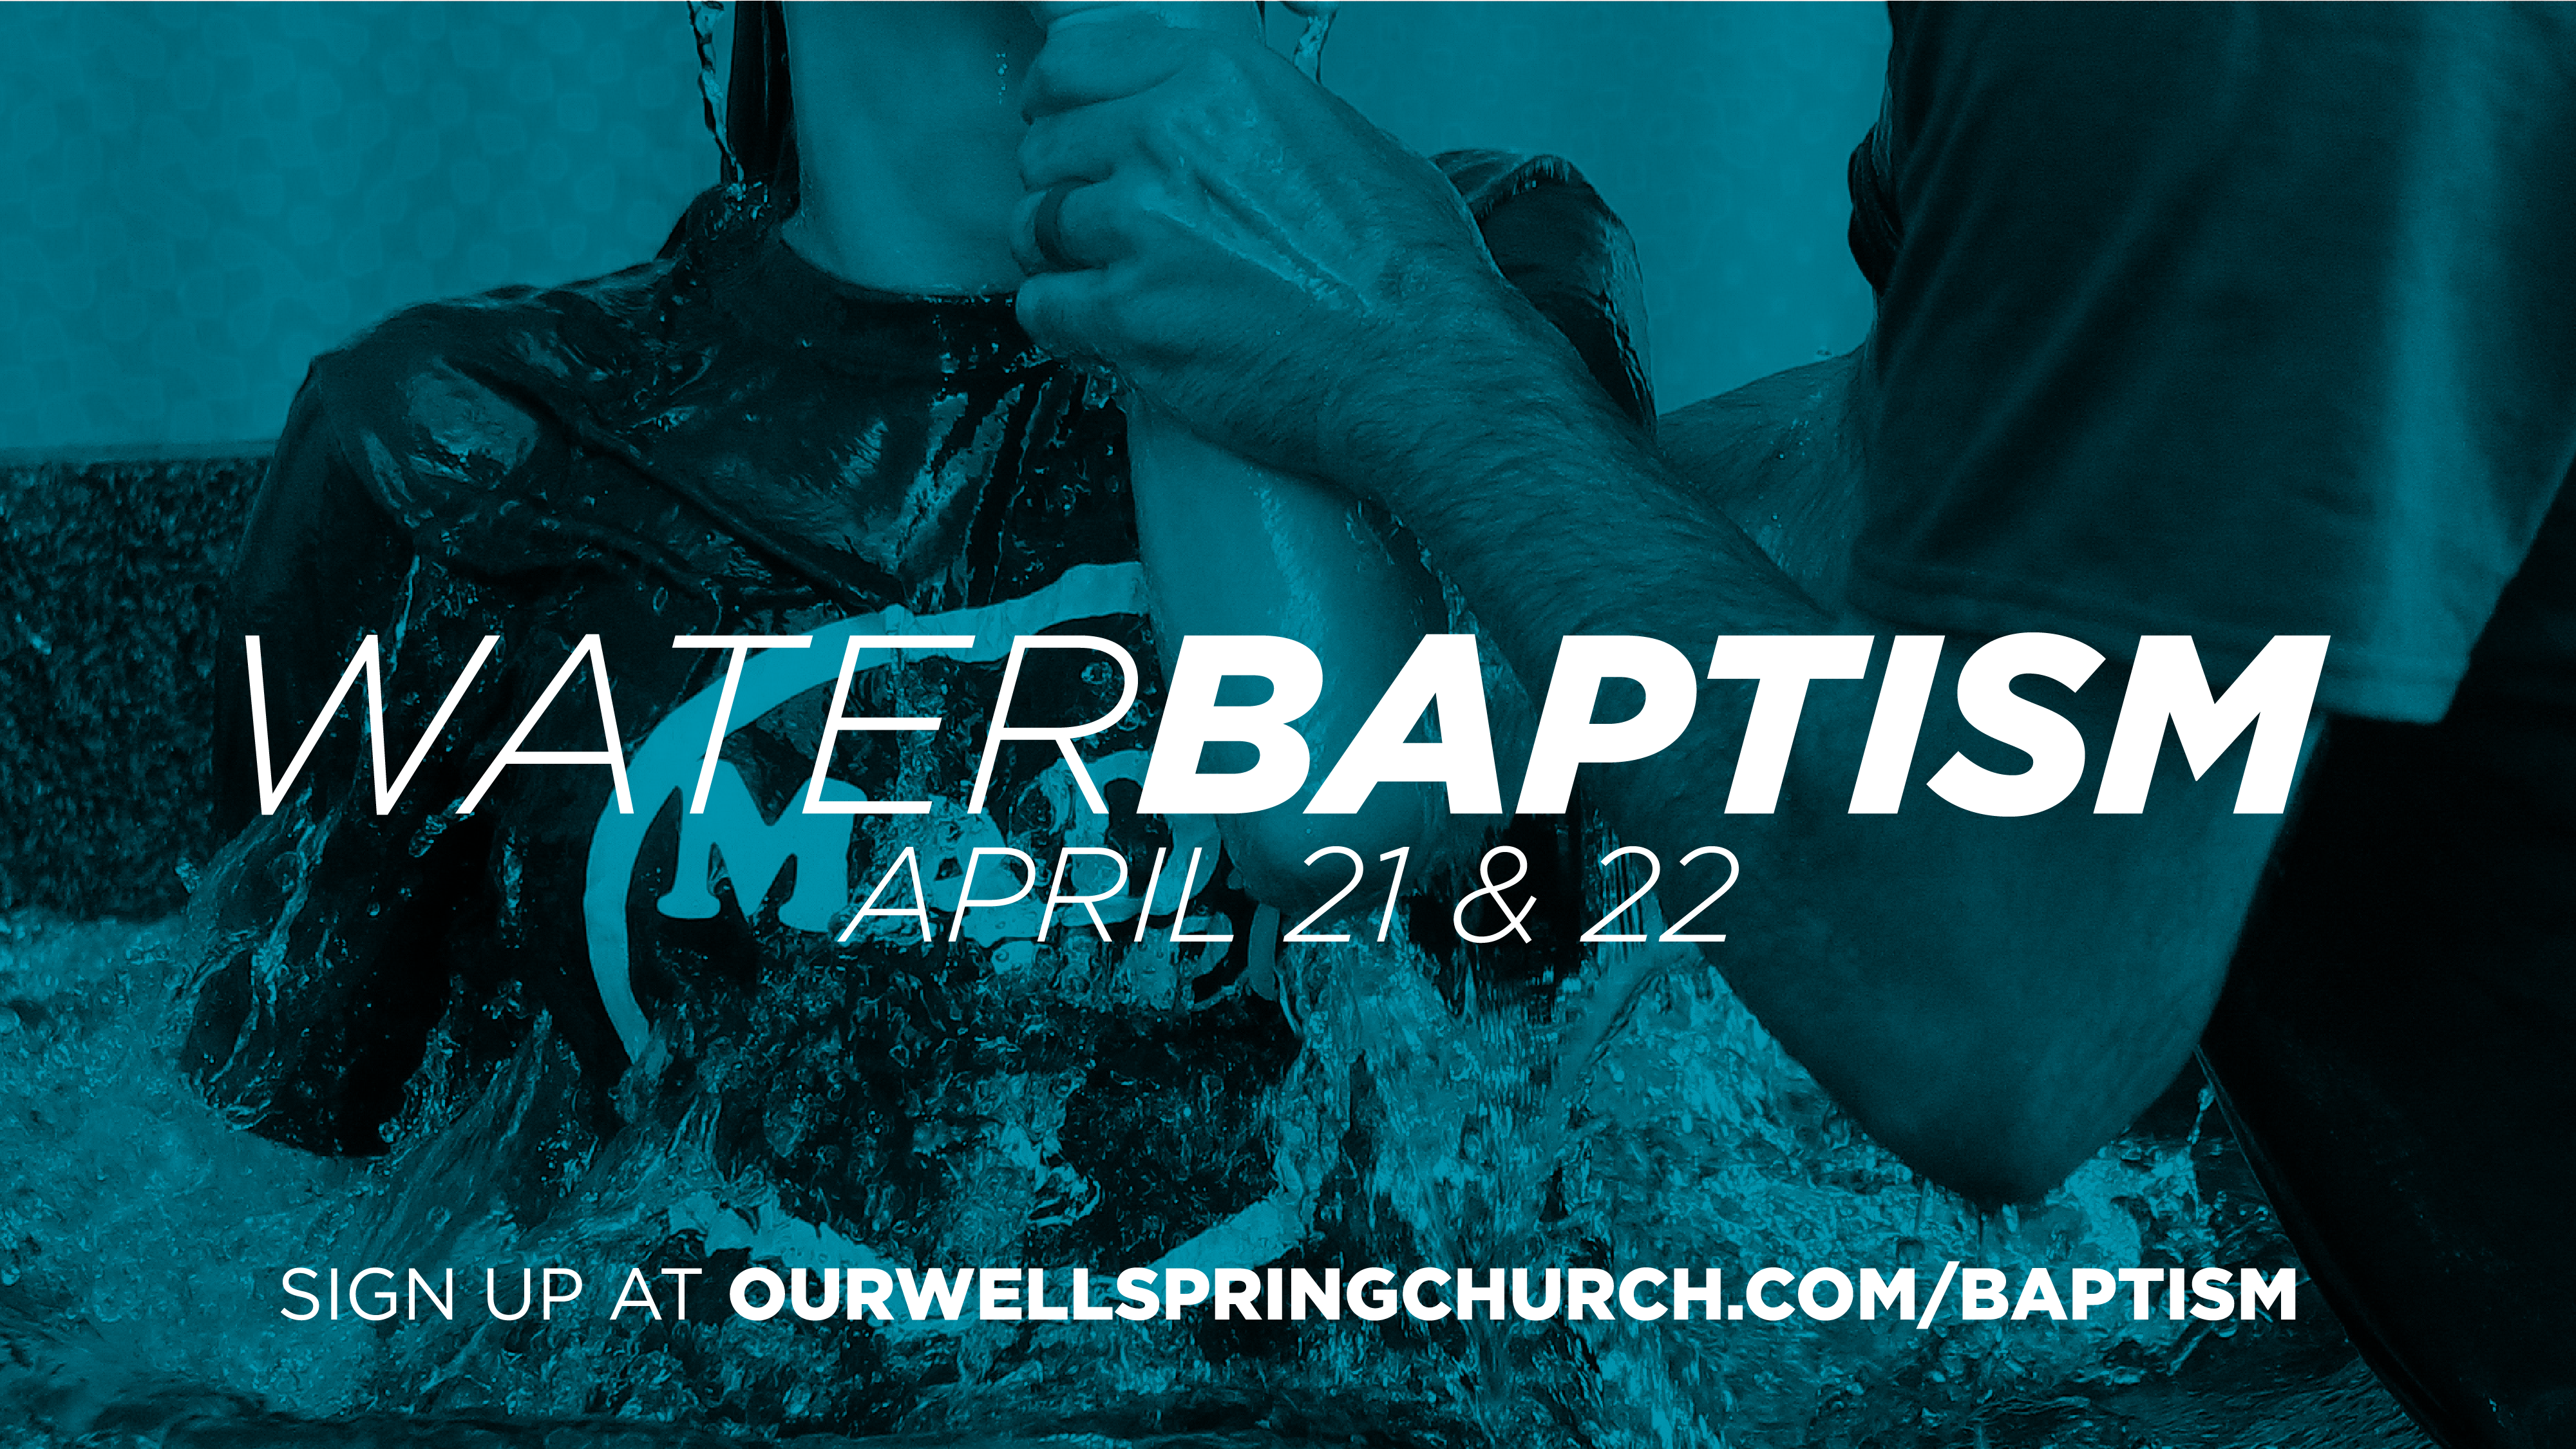 Water baptism 01